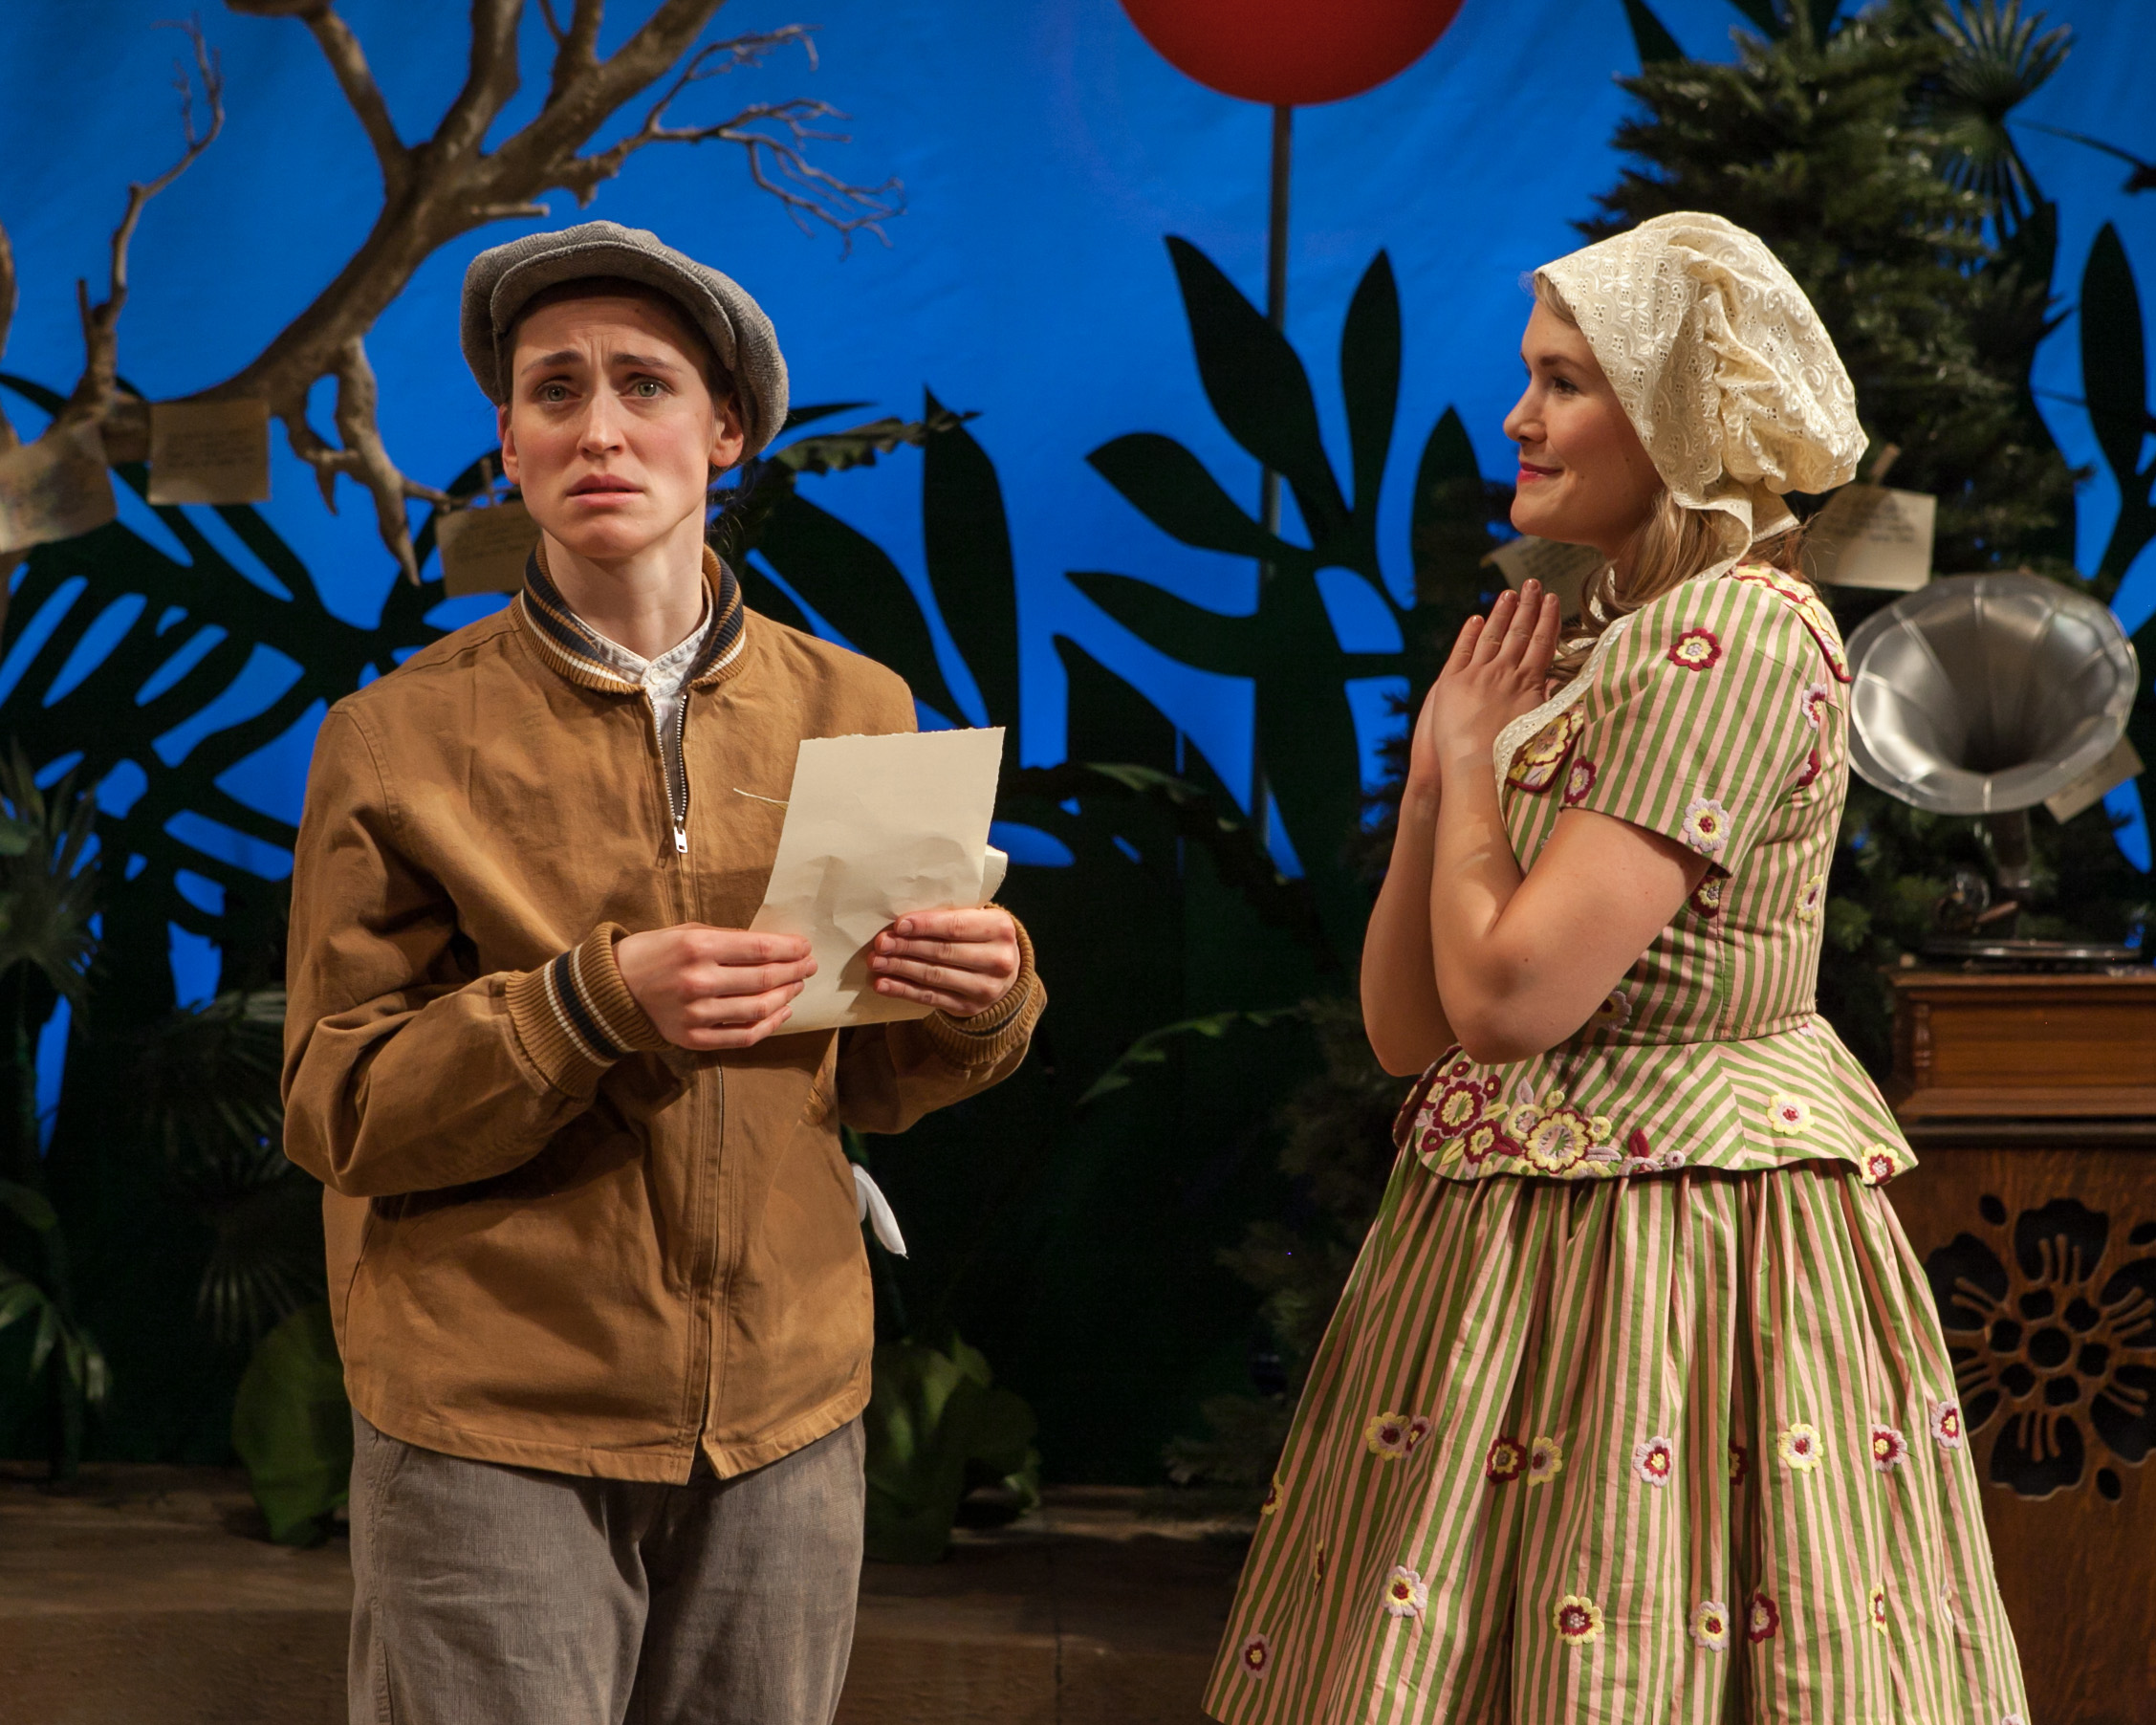 Elizabeth Stahlmann and Megan Bartle in As You Like It. Photo by Heidi Boehnenkamp, courtesy Guthrie Theater.